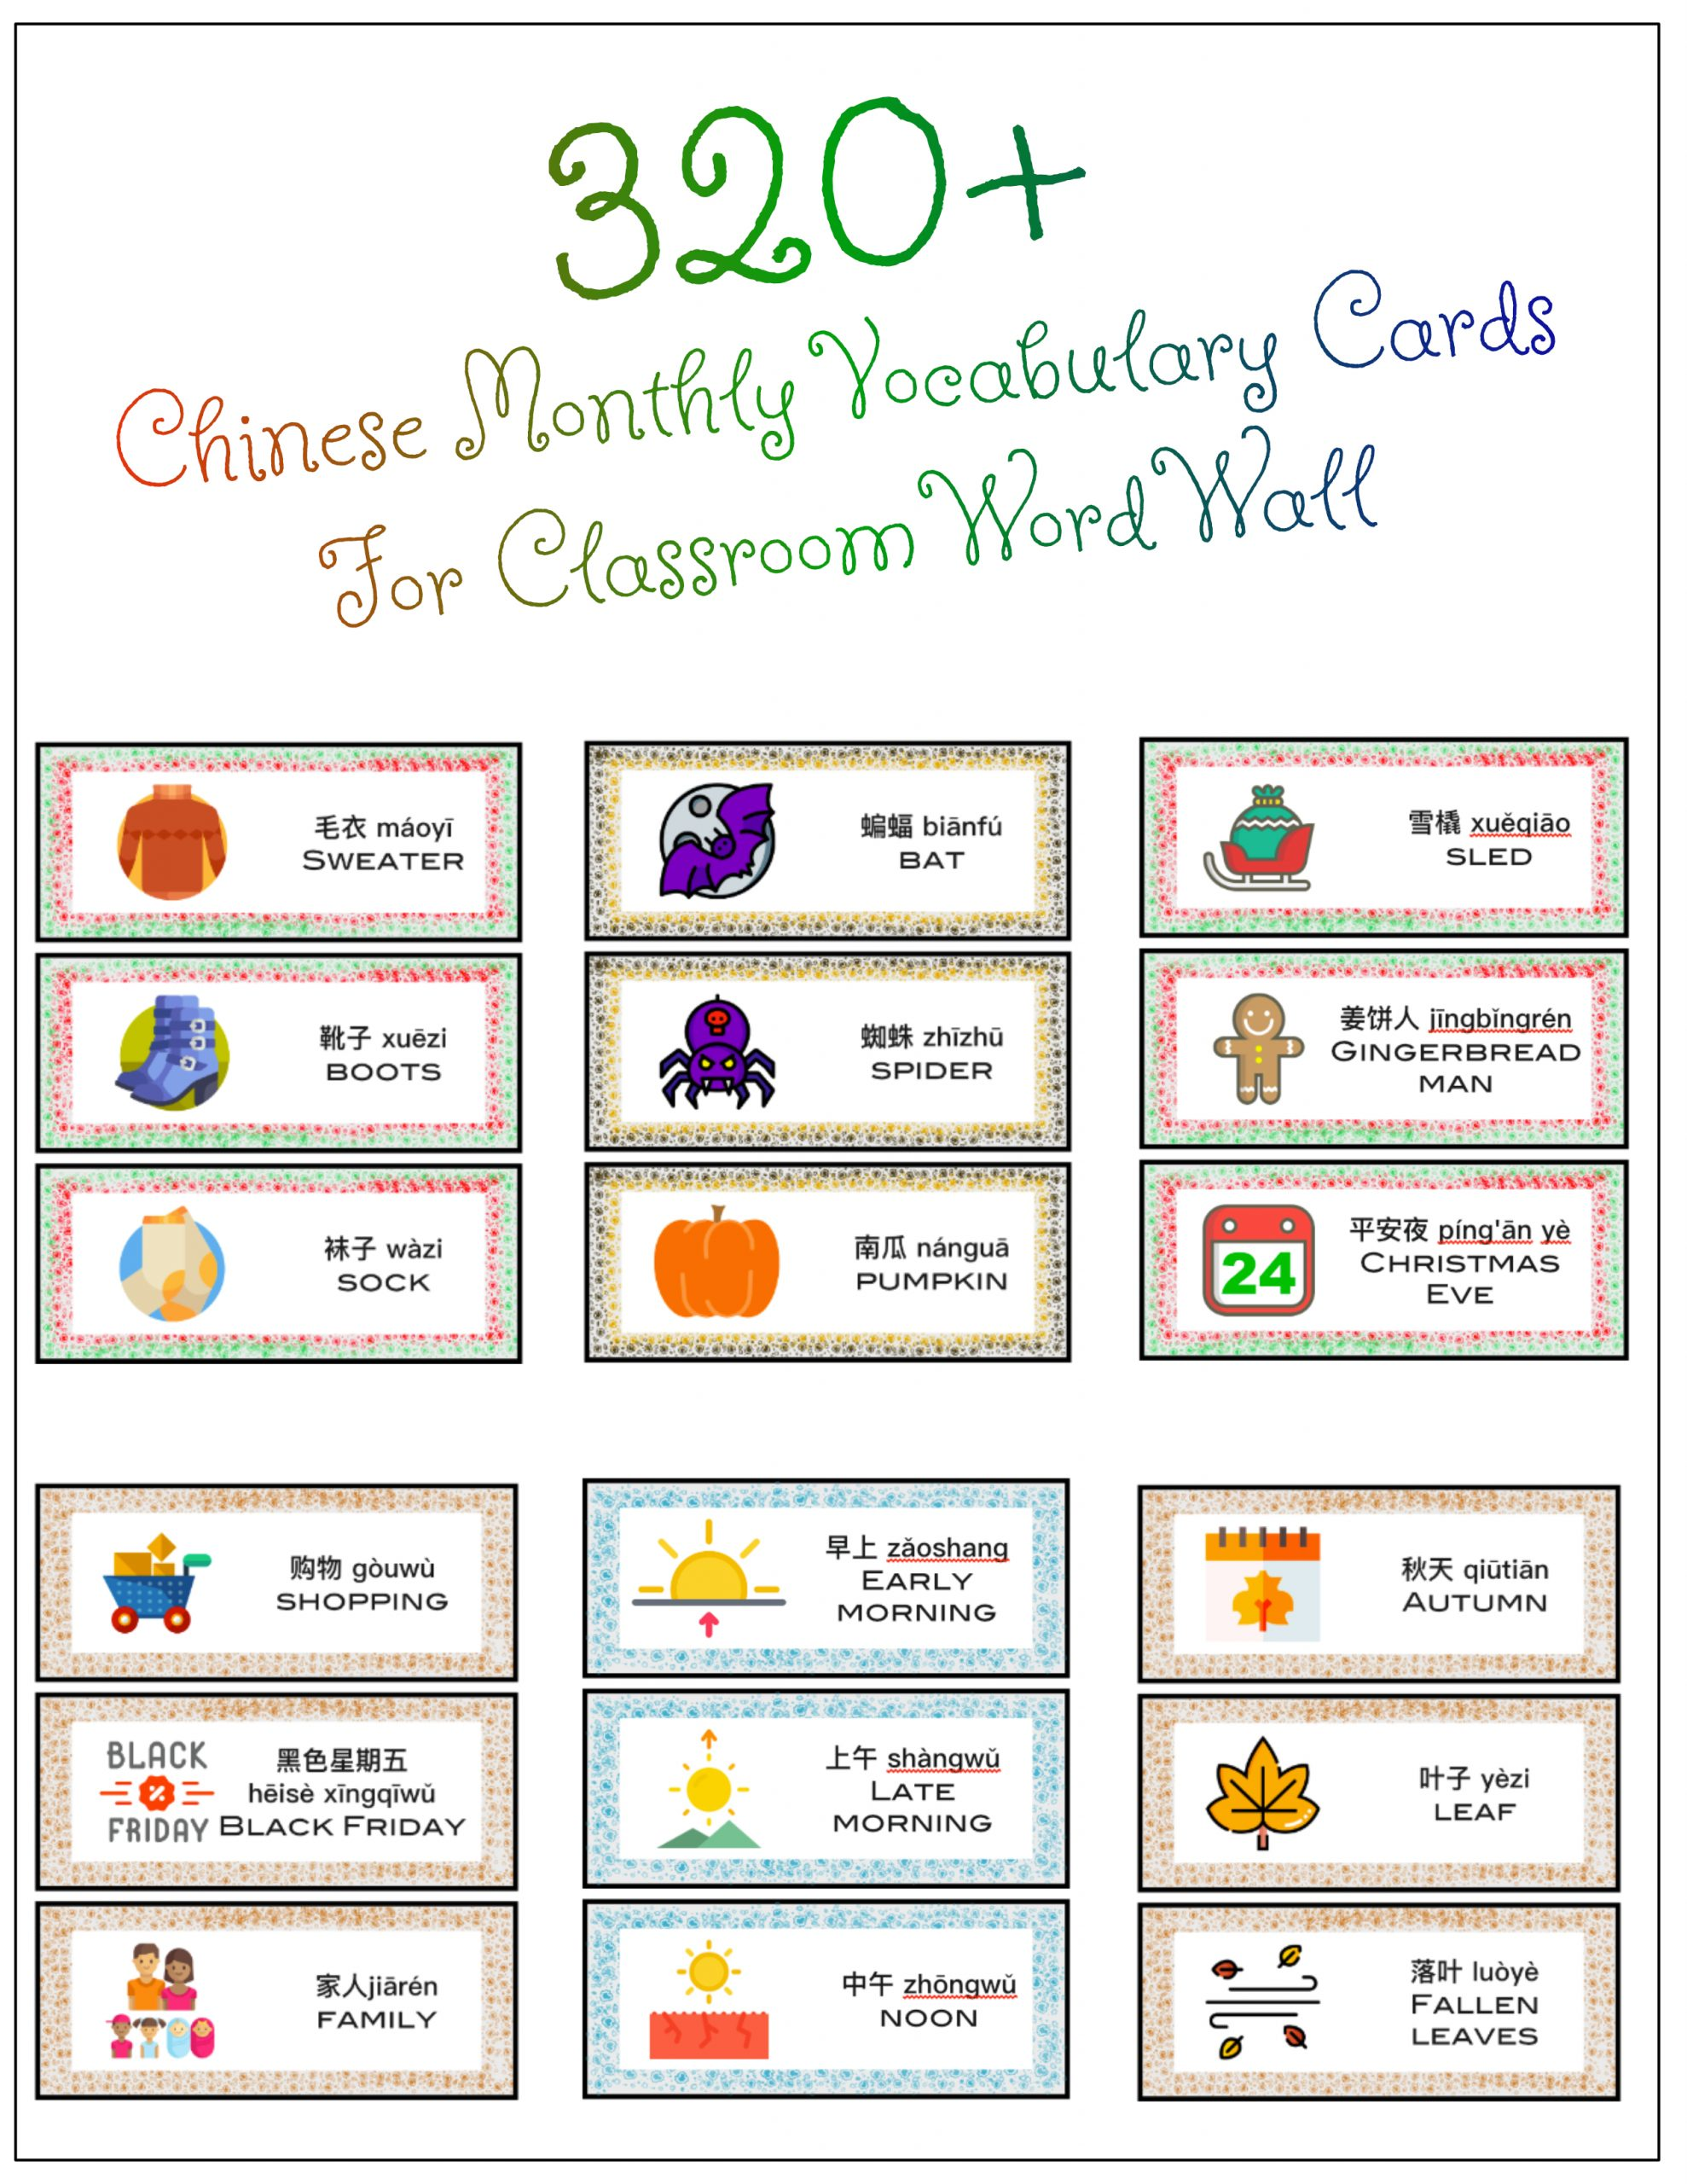 320 Digital Chinese Monthly Vocabulary Cards For